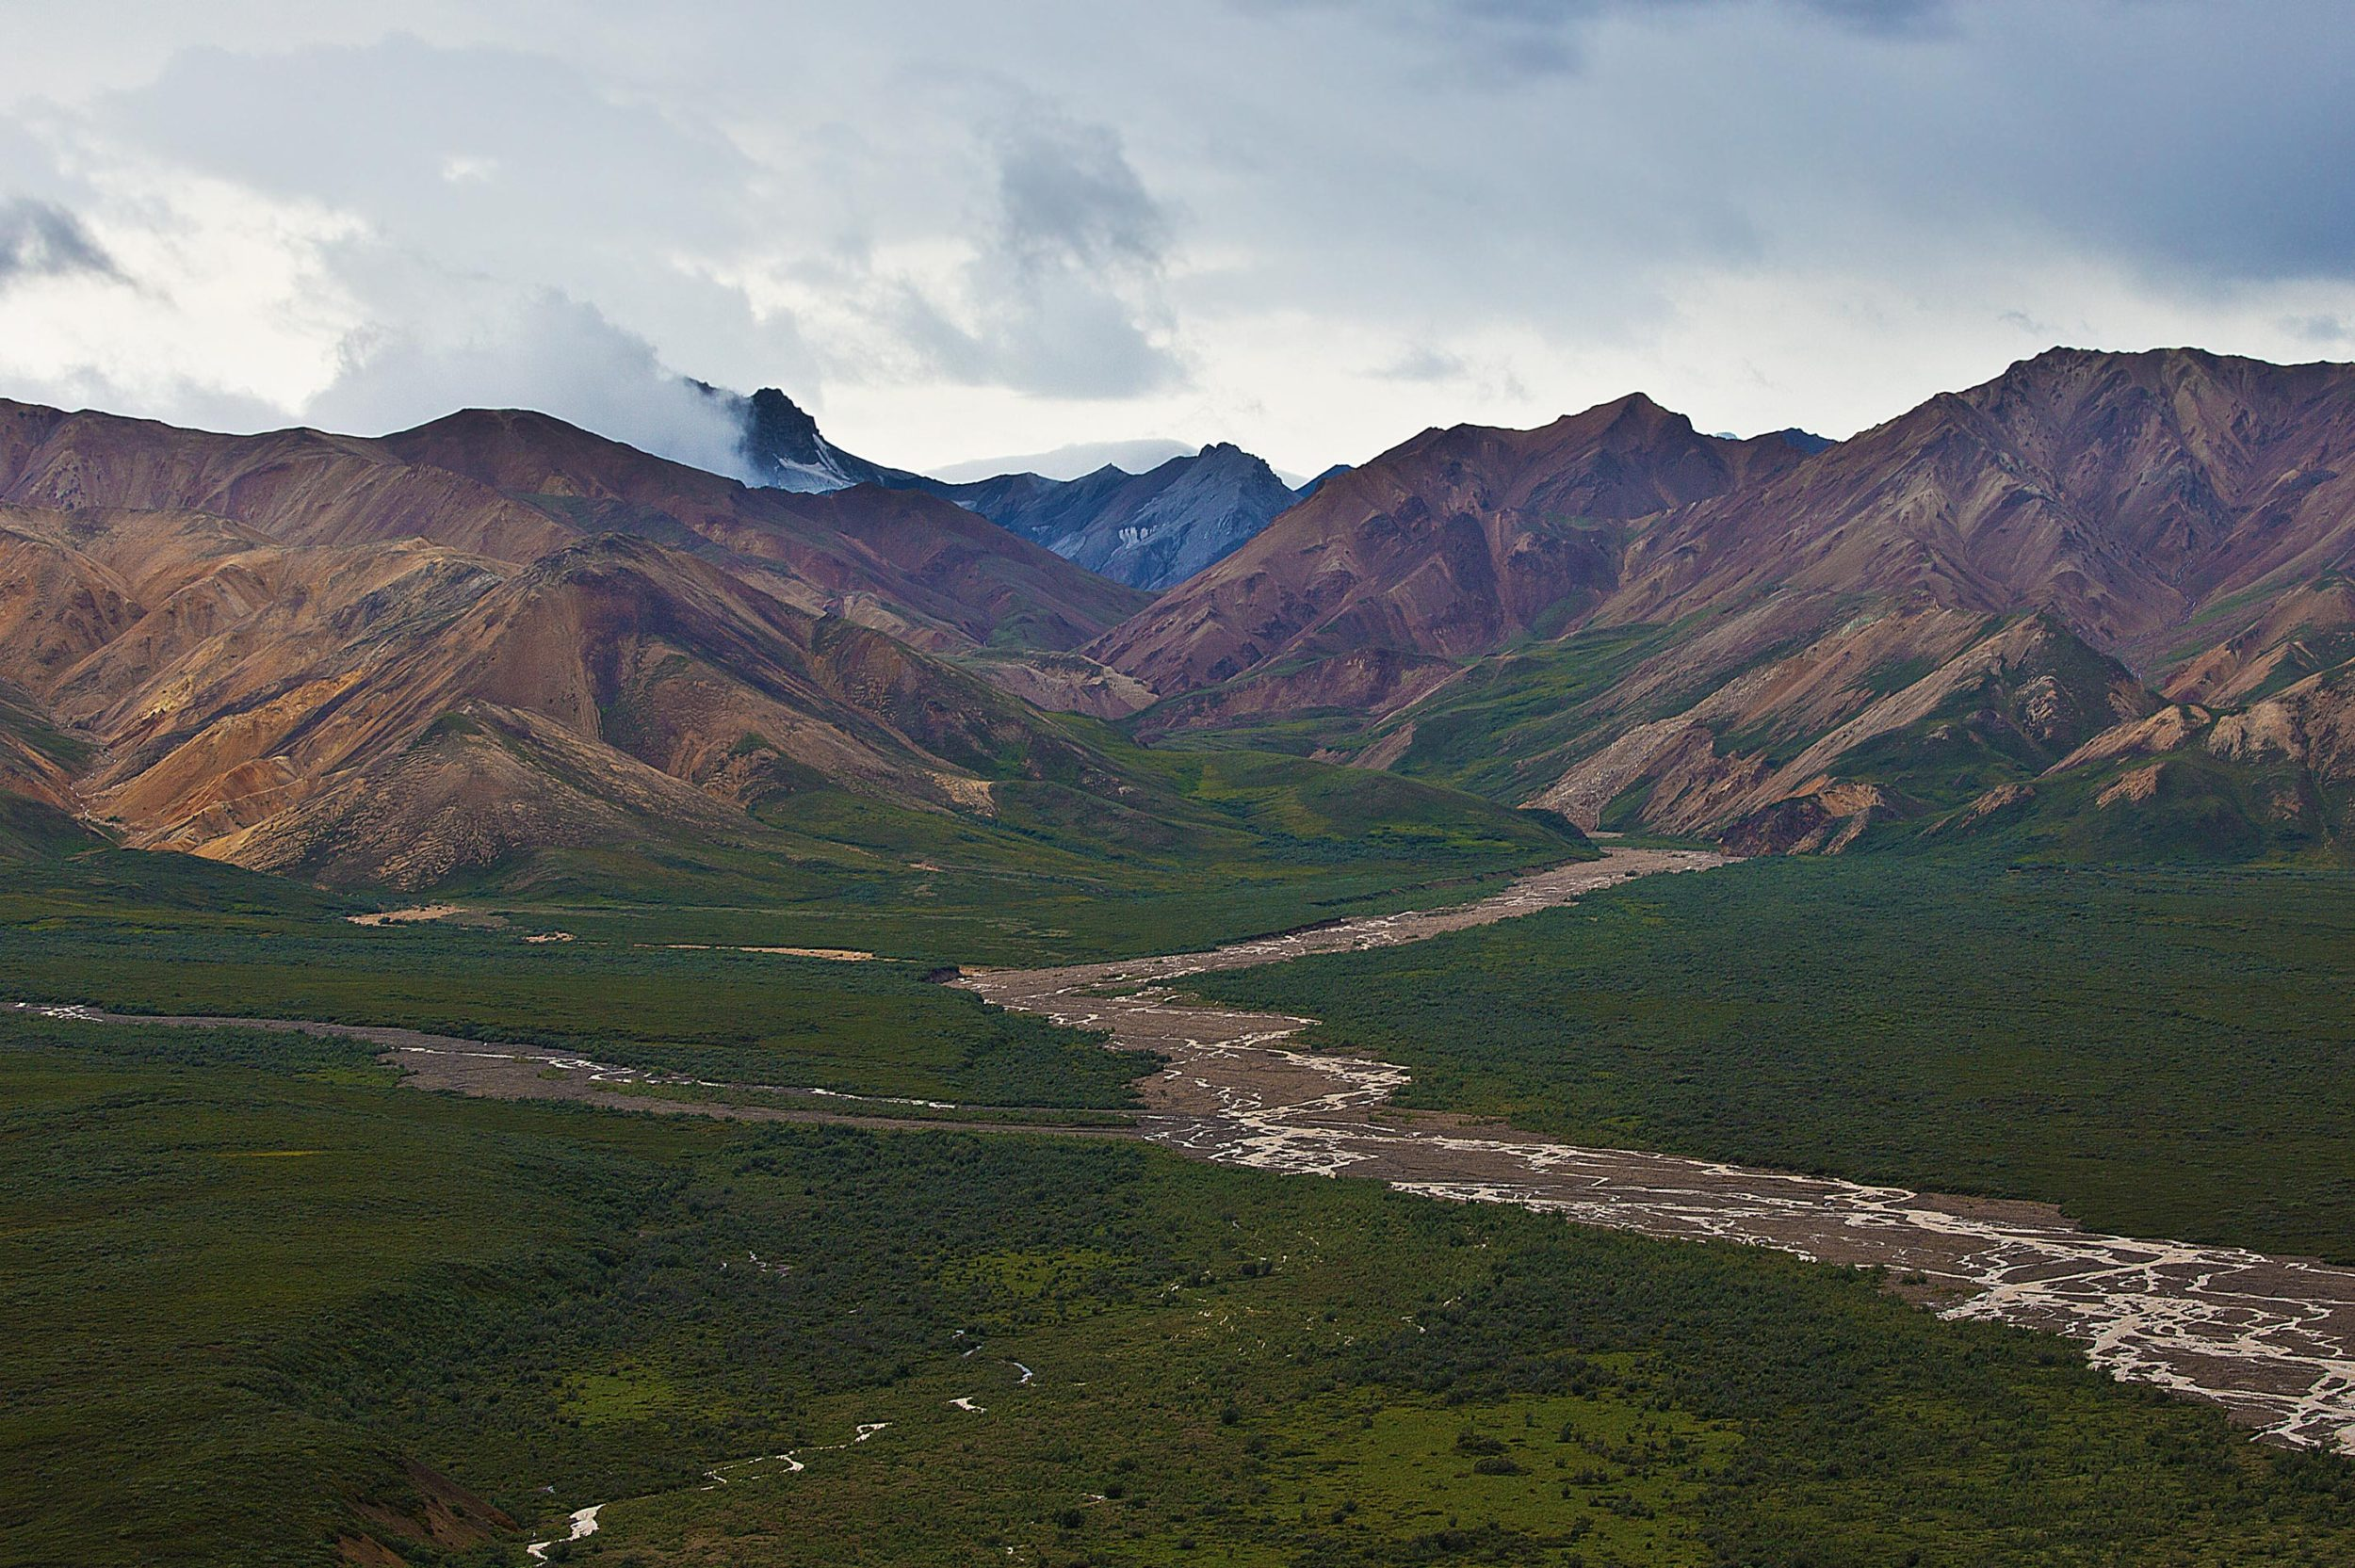 The Polychrome Pass